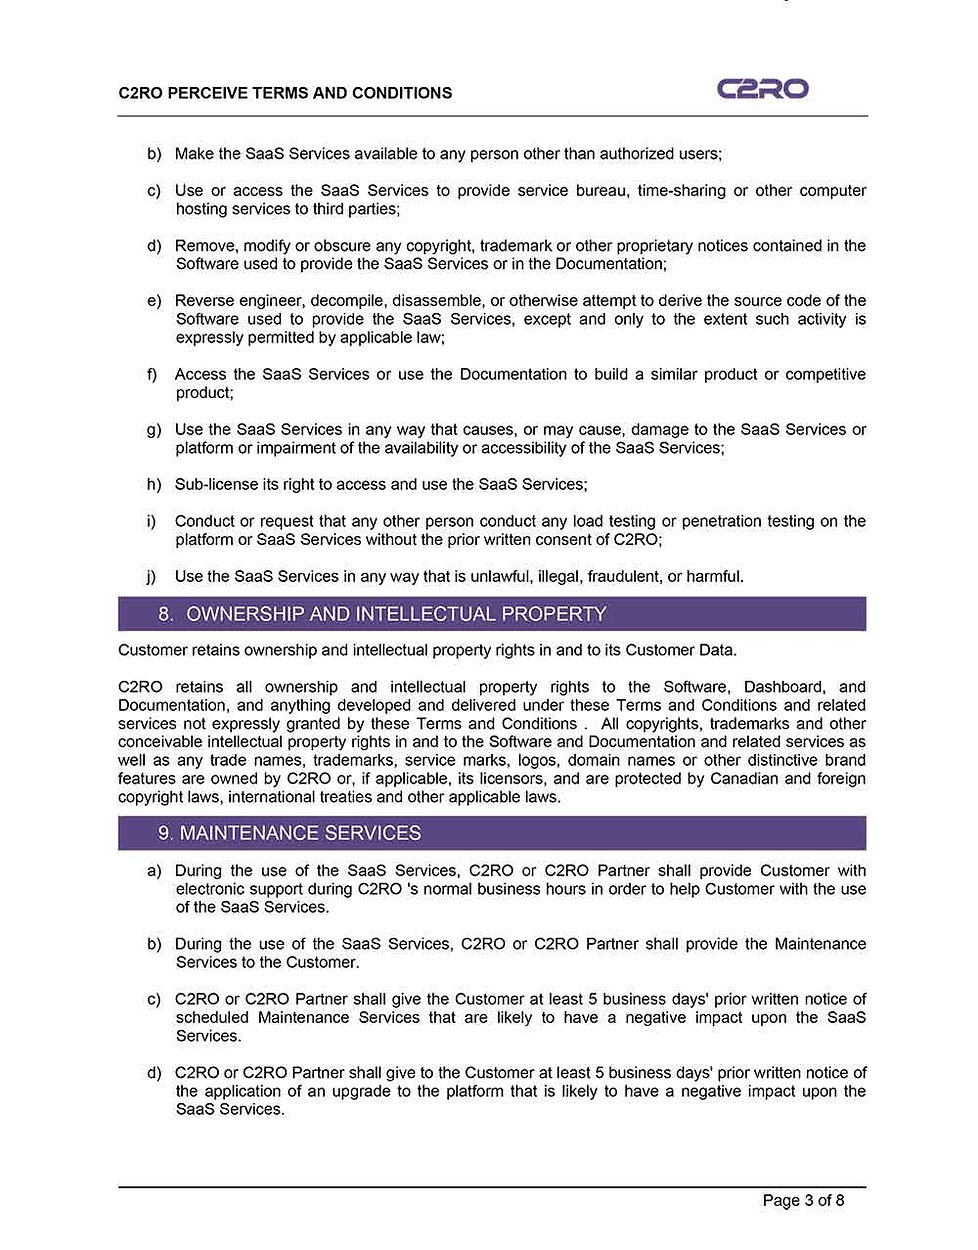 Terms-and-conditions-p3.jpg